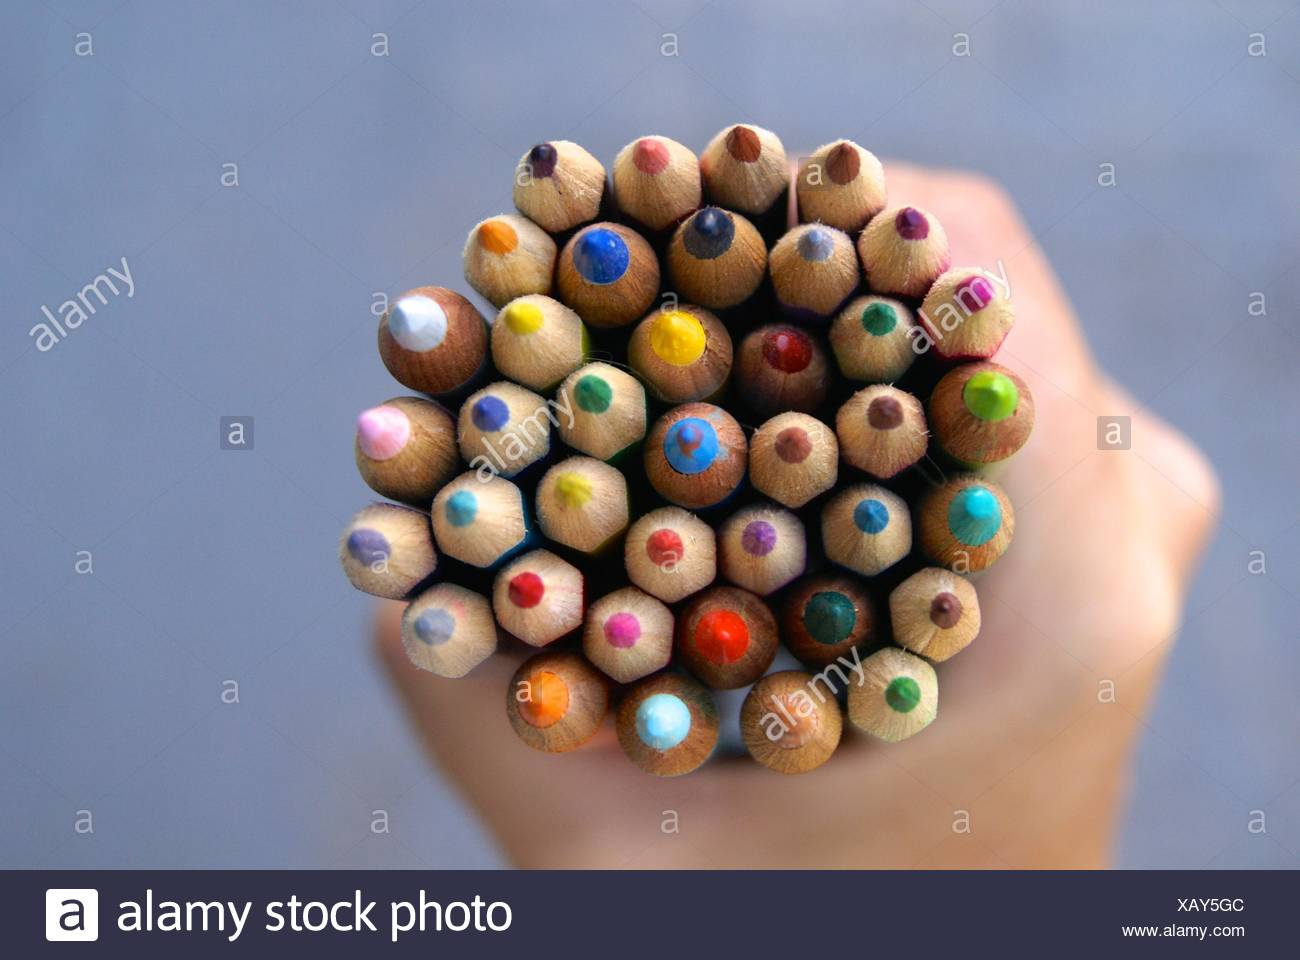 Human hand holding colored pencils - Stock Image